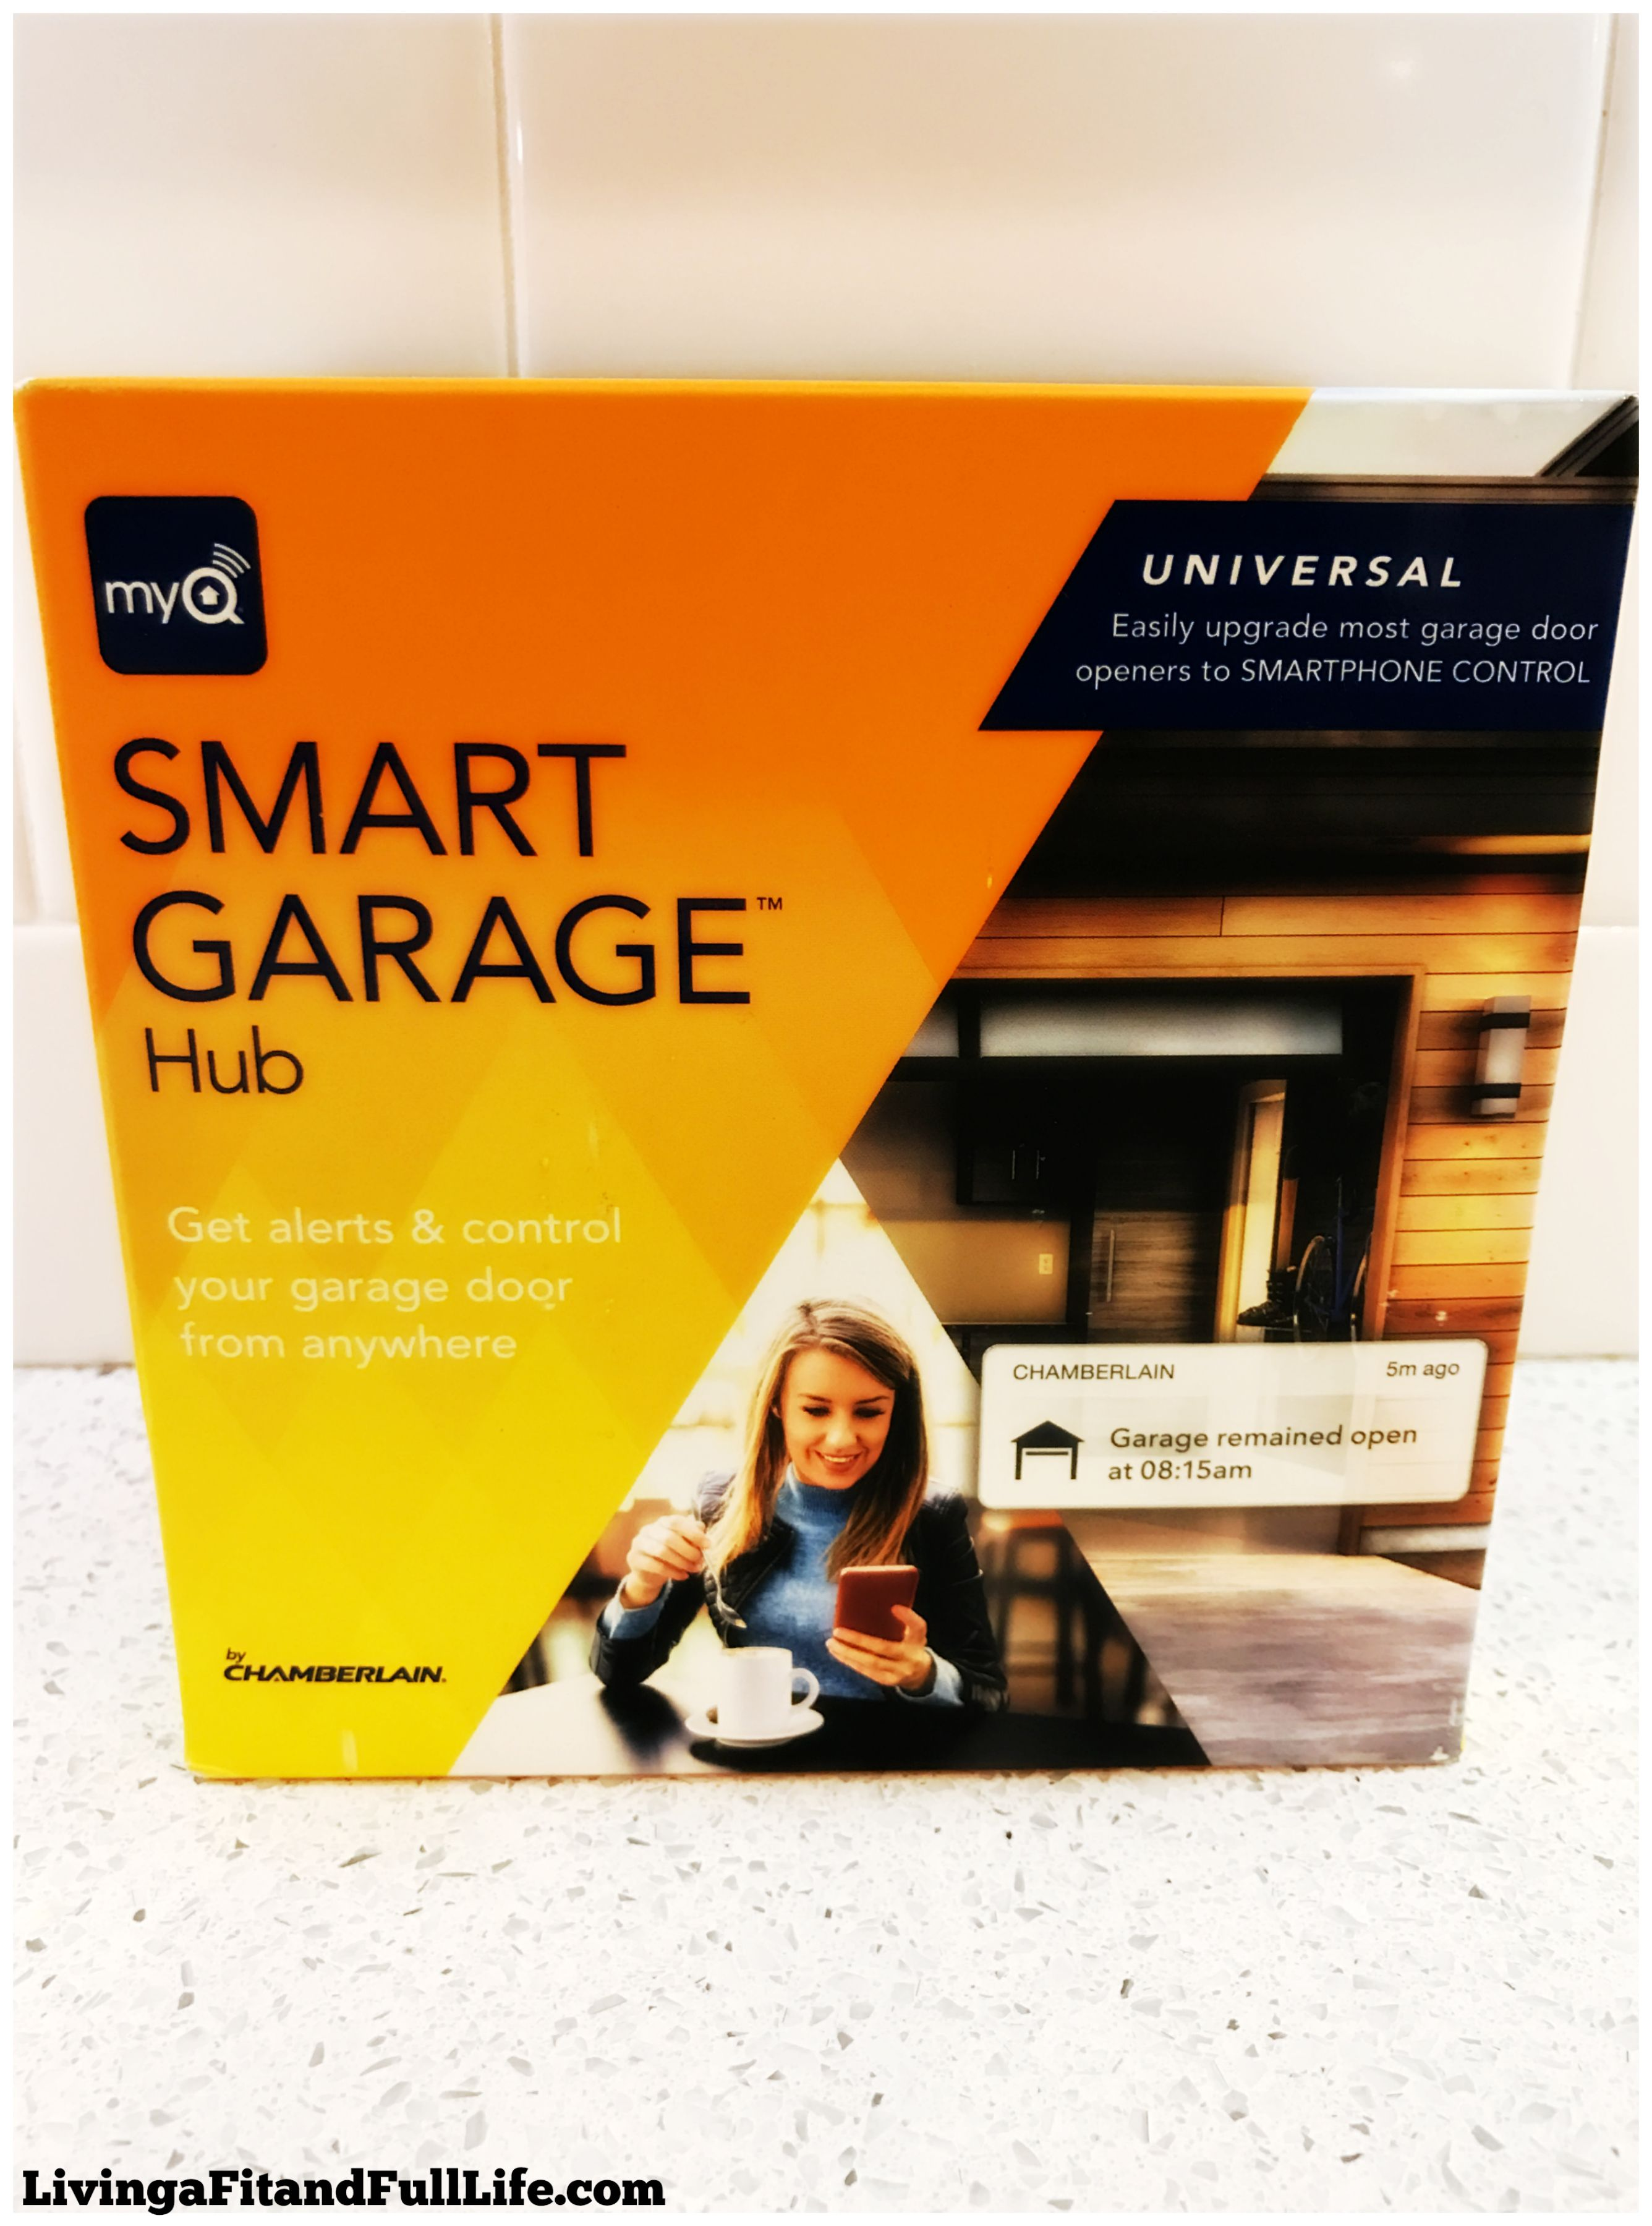 Make Home Access Easier With Chamberlain S Myq Smart Garage Hub Vdgg Garage Smart Chamberlain